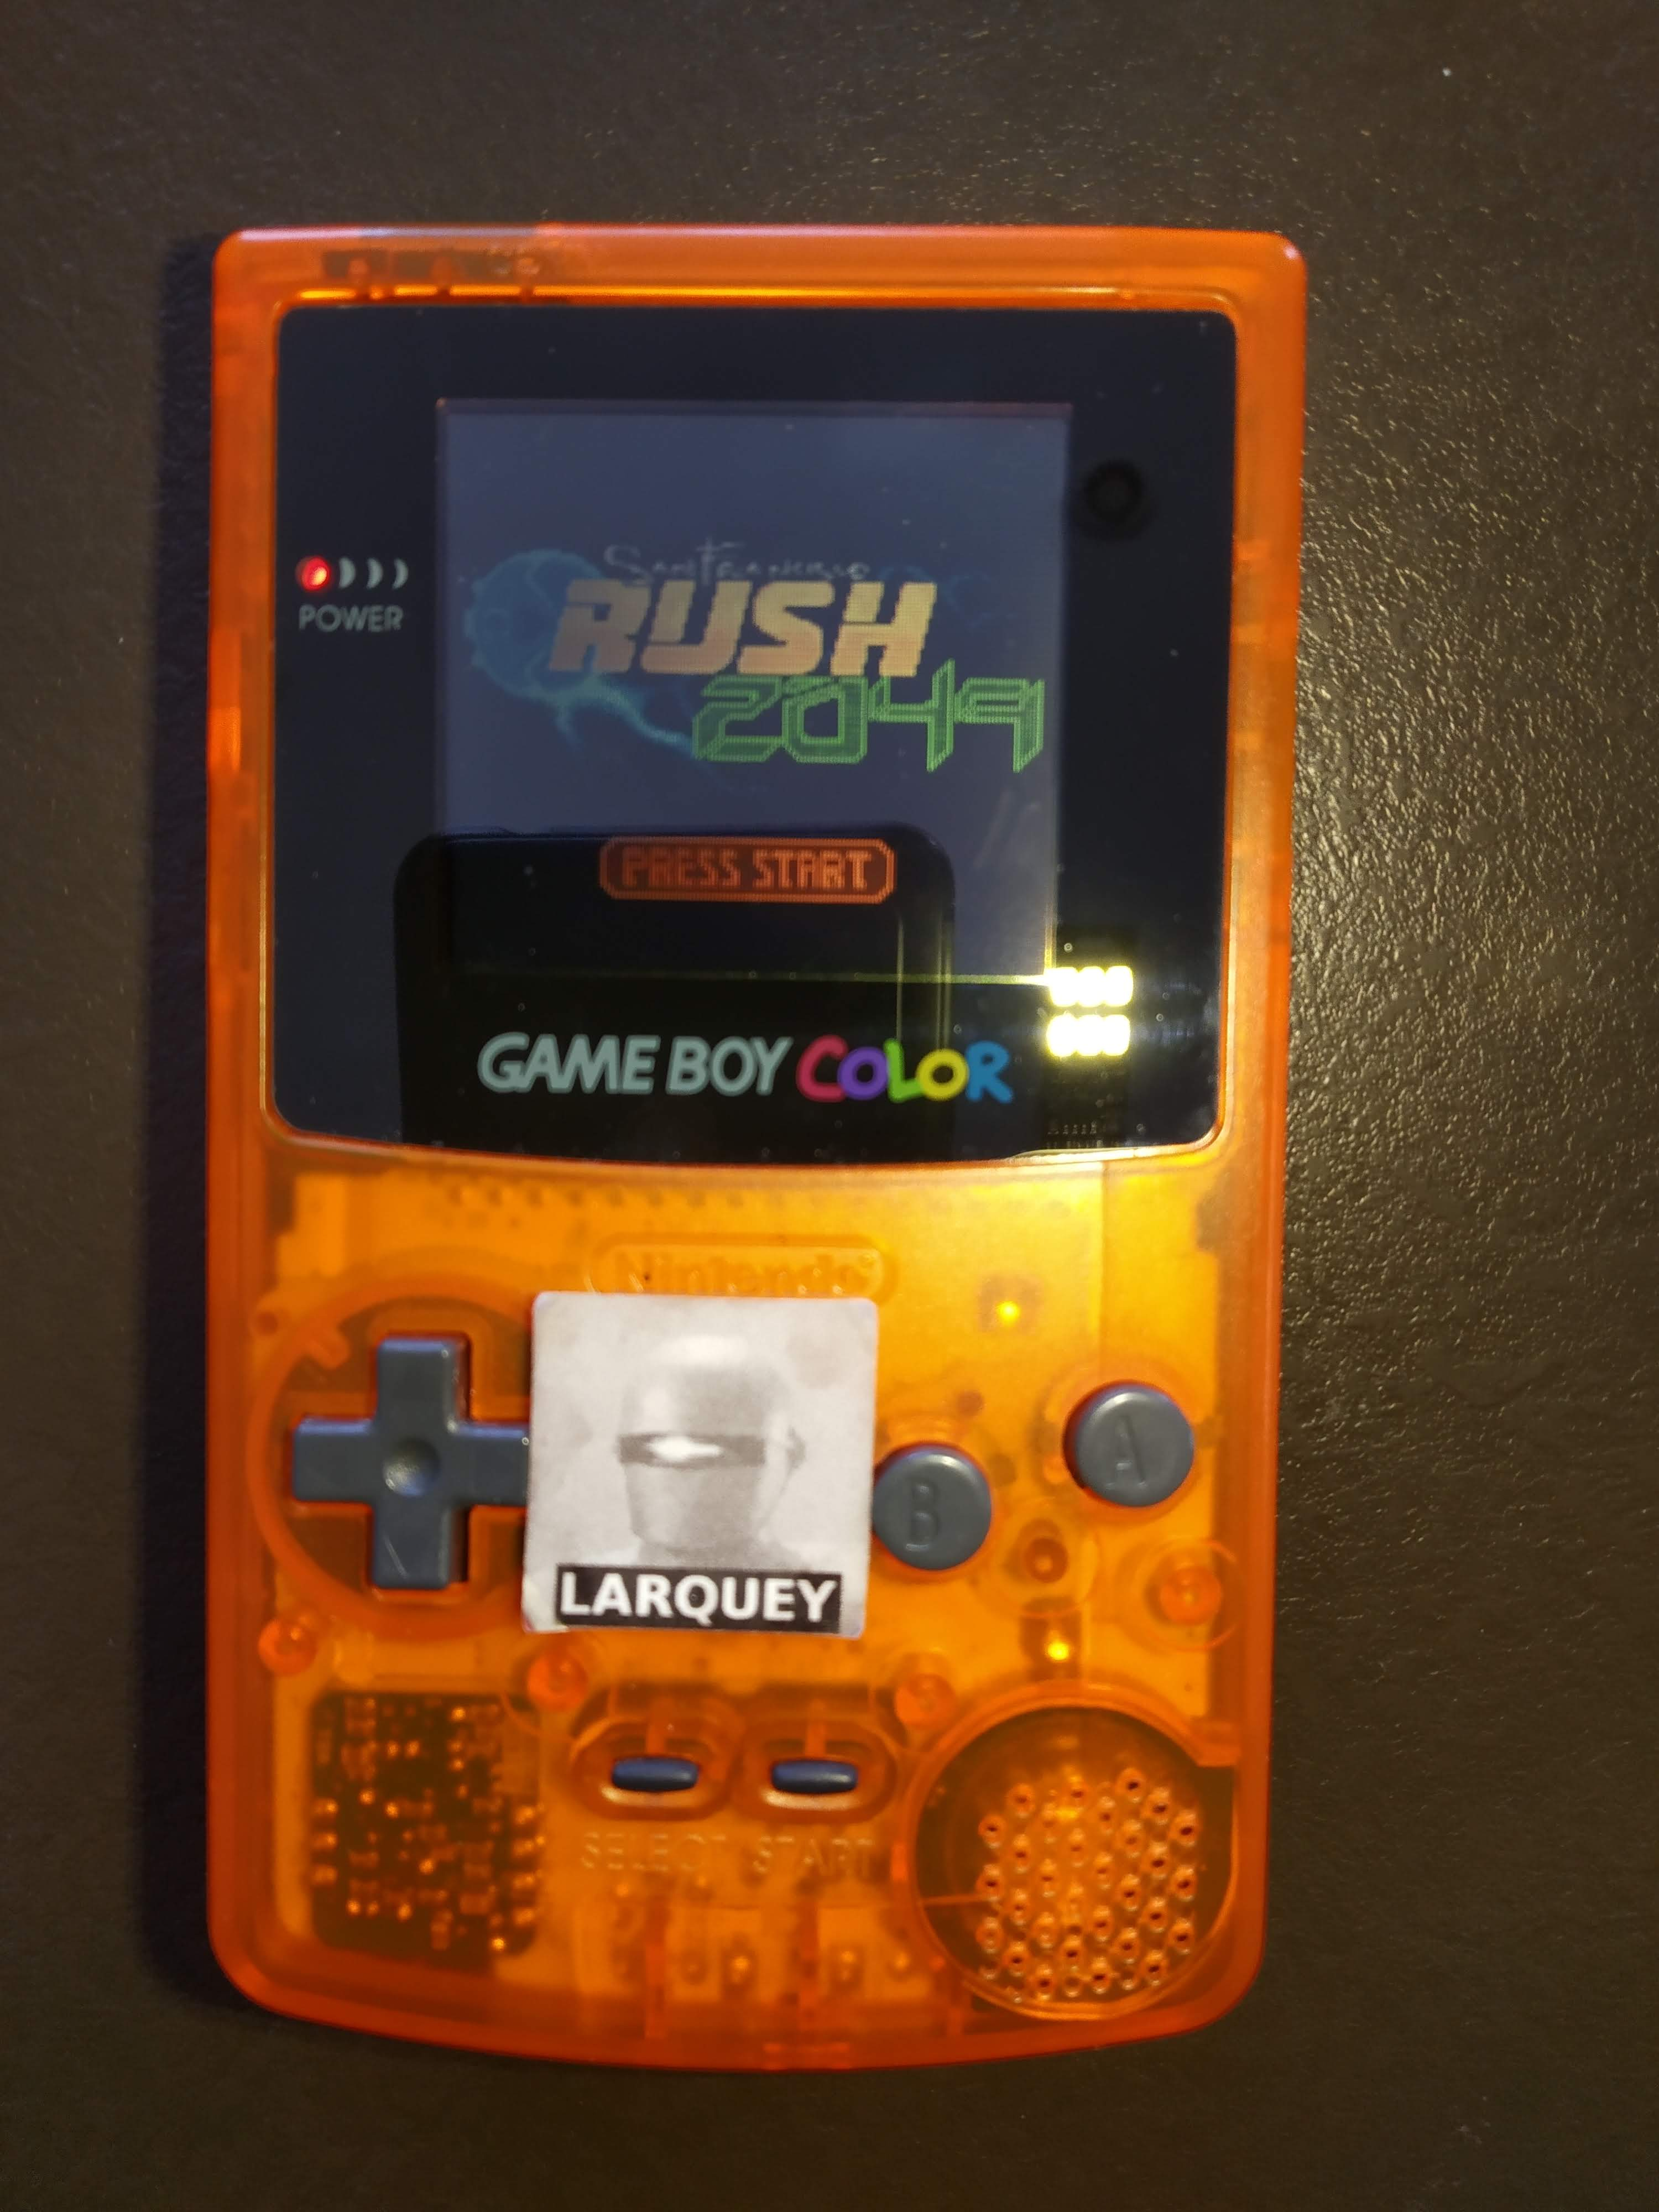 Larquey: San Francisco Rush 2049: Time Trial [Track 1] (Game Boy Color) 0:01:43.1 points on 2020-07-25 04:48:48